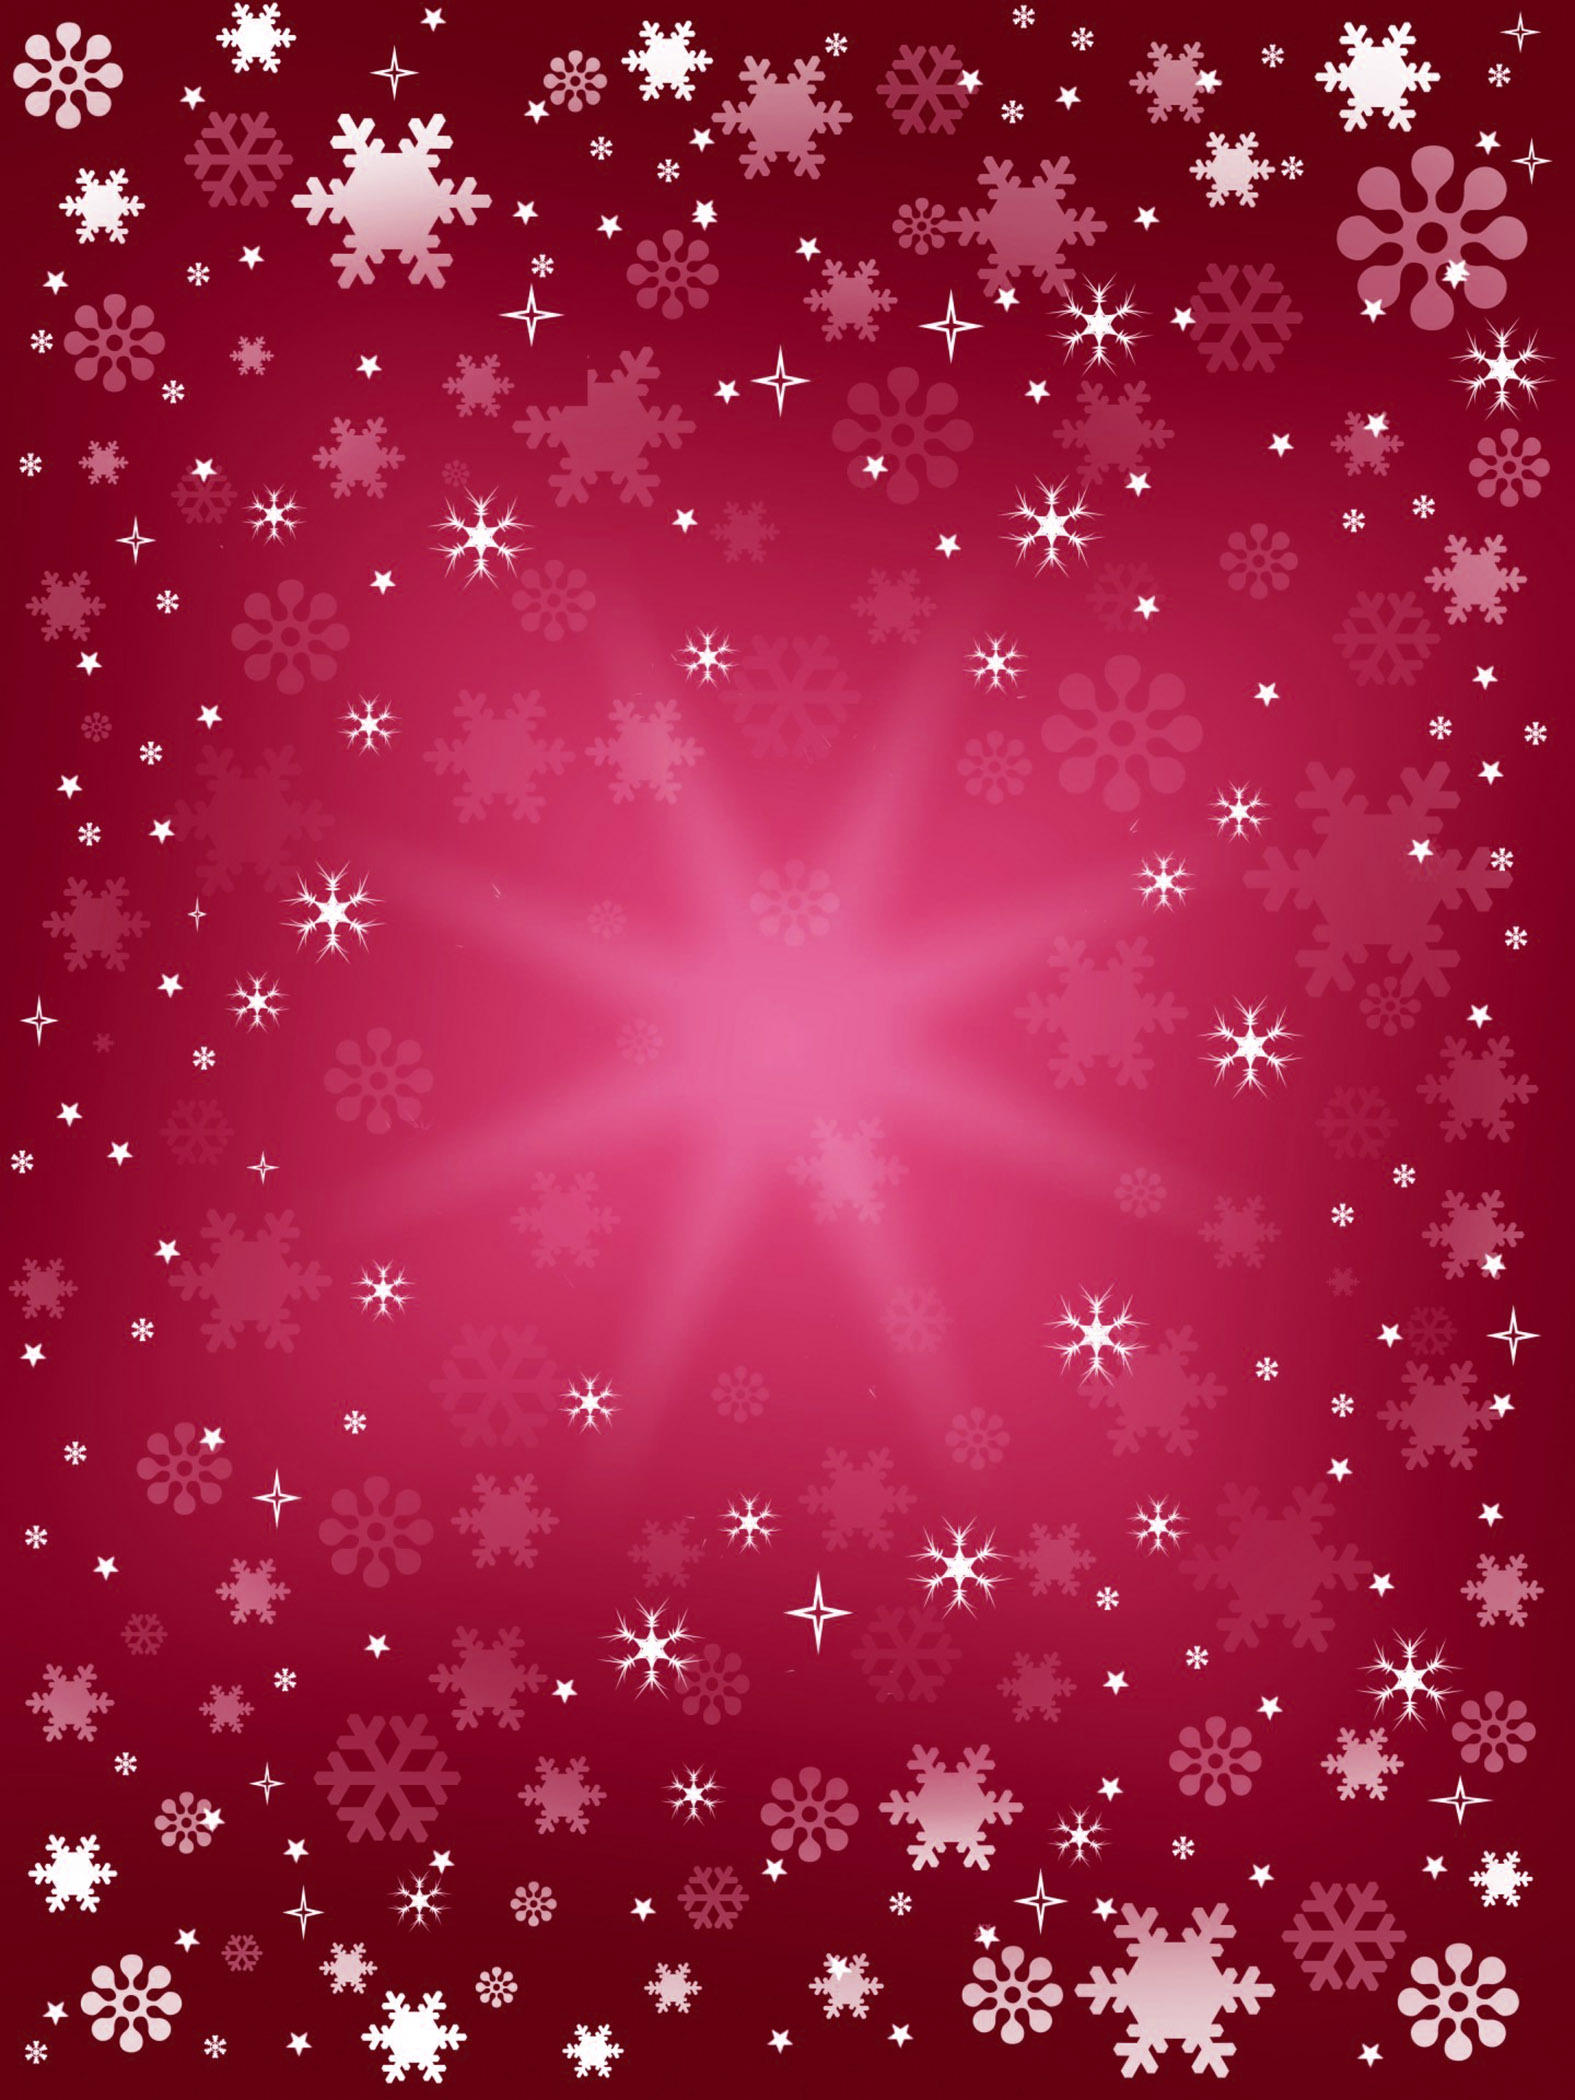 Purple Falling Circles Wallpaper 35 Stars At Xmas Background Images Cards Or Christmas